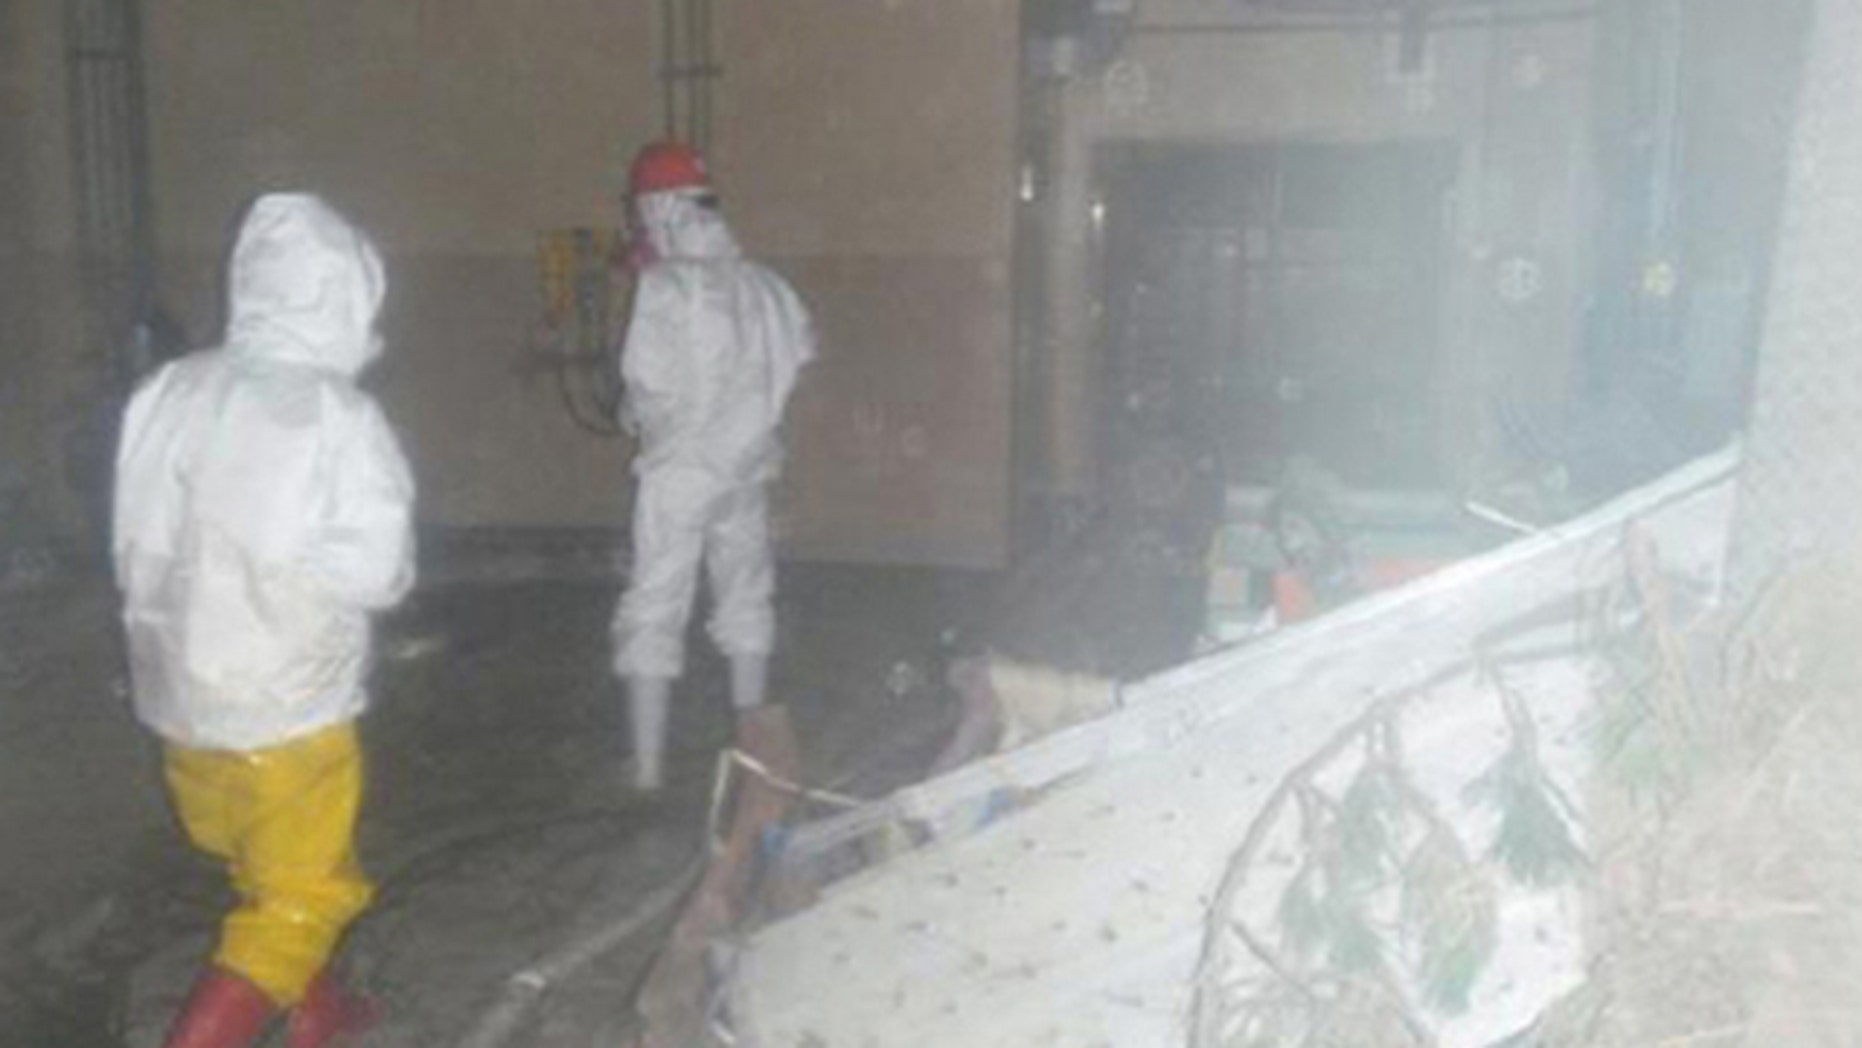 Workers wearing protective suits walk around the entrance of the crippled Fukushima Daiichi Nuclear Power Plant in Fukushima prefecture, northern Japan in this handout photo taken April 8, 2011, and released by Japan's Nuclear and Industrial Safety Agency.